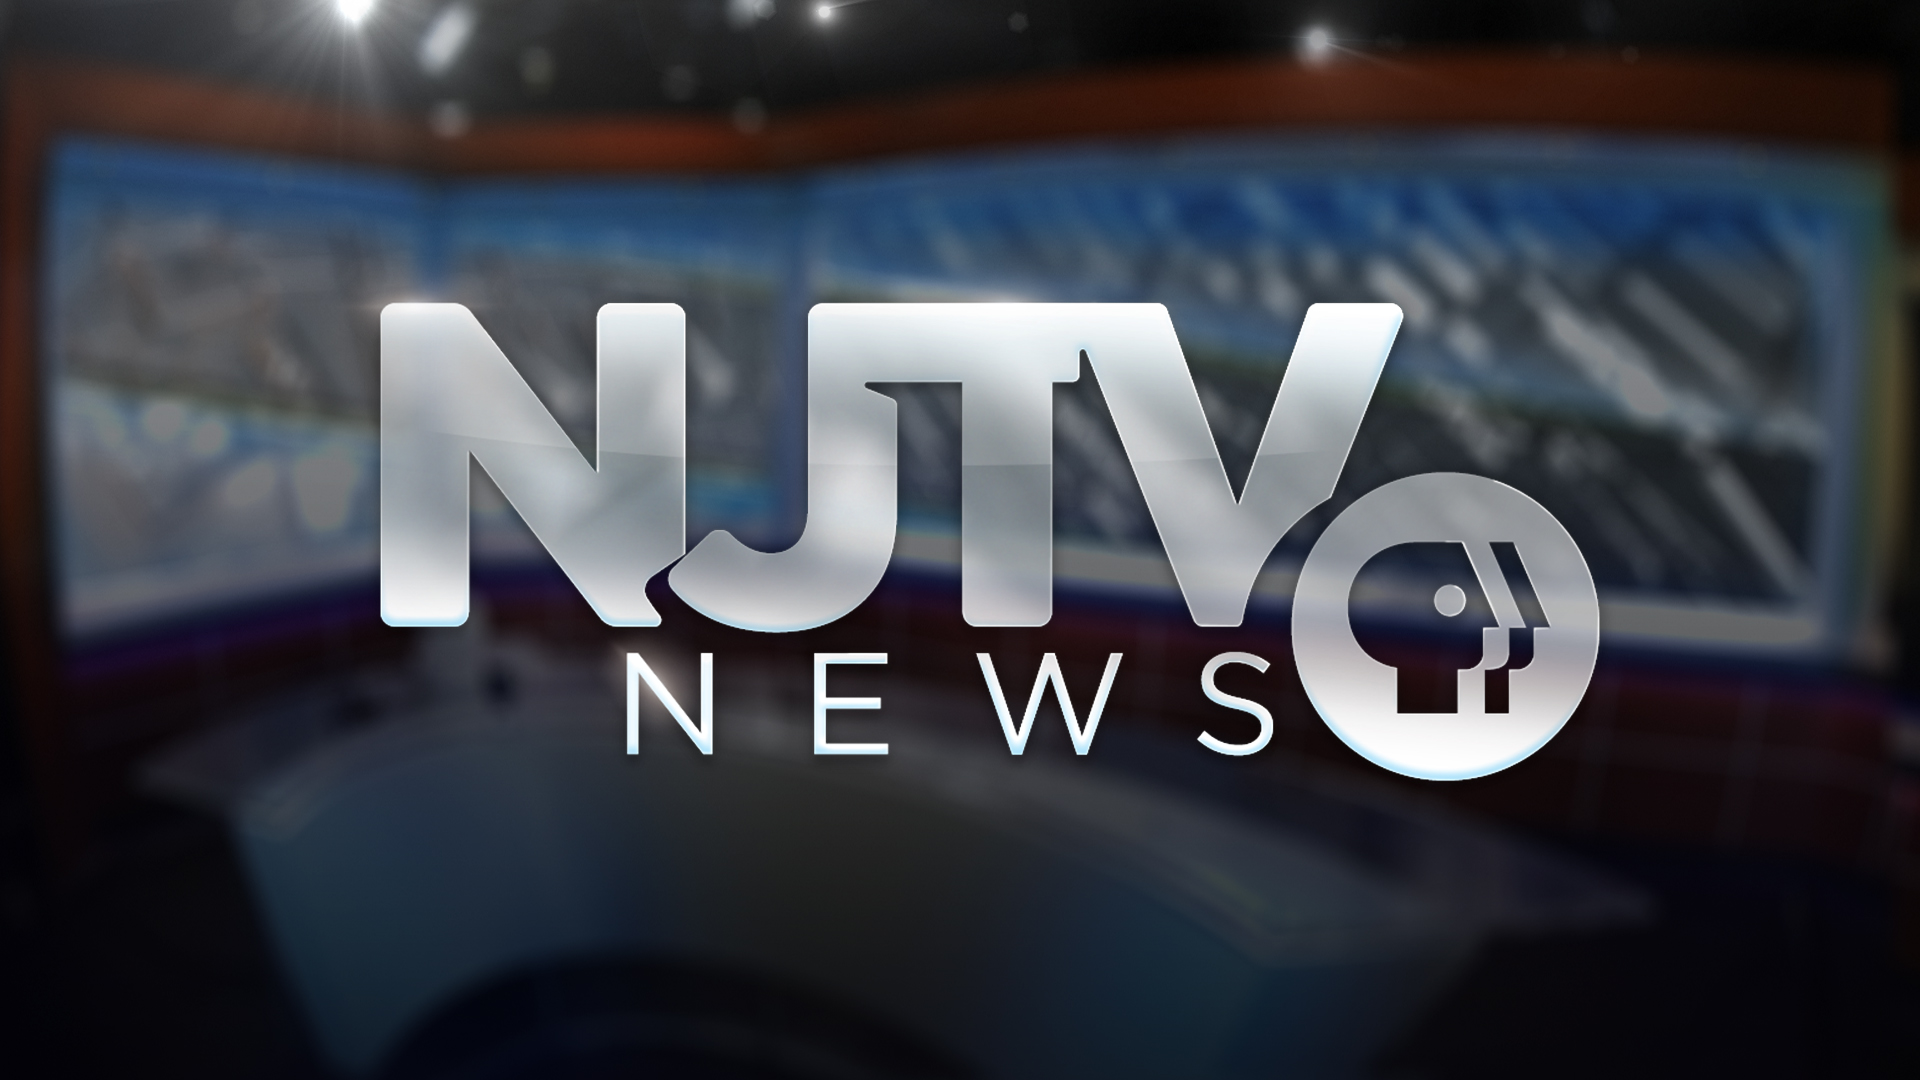 Latest news stories in the series from NJTV News